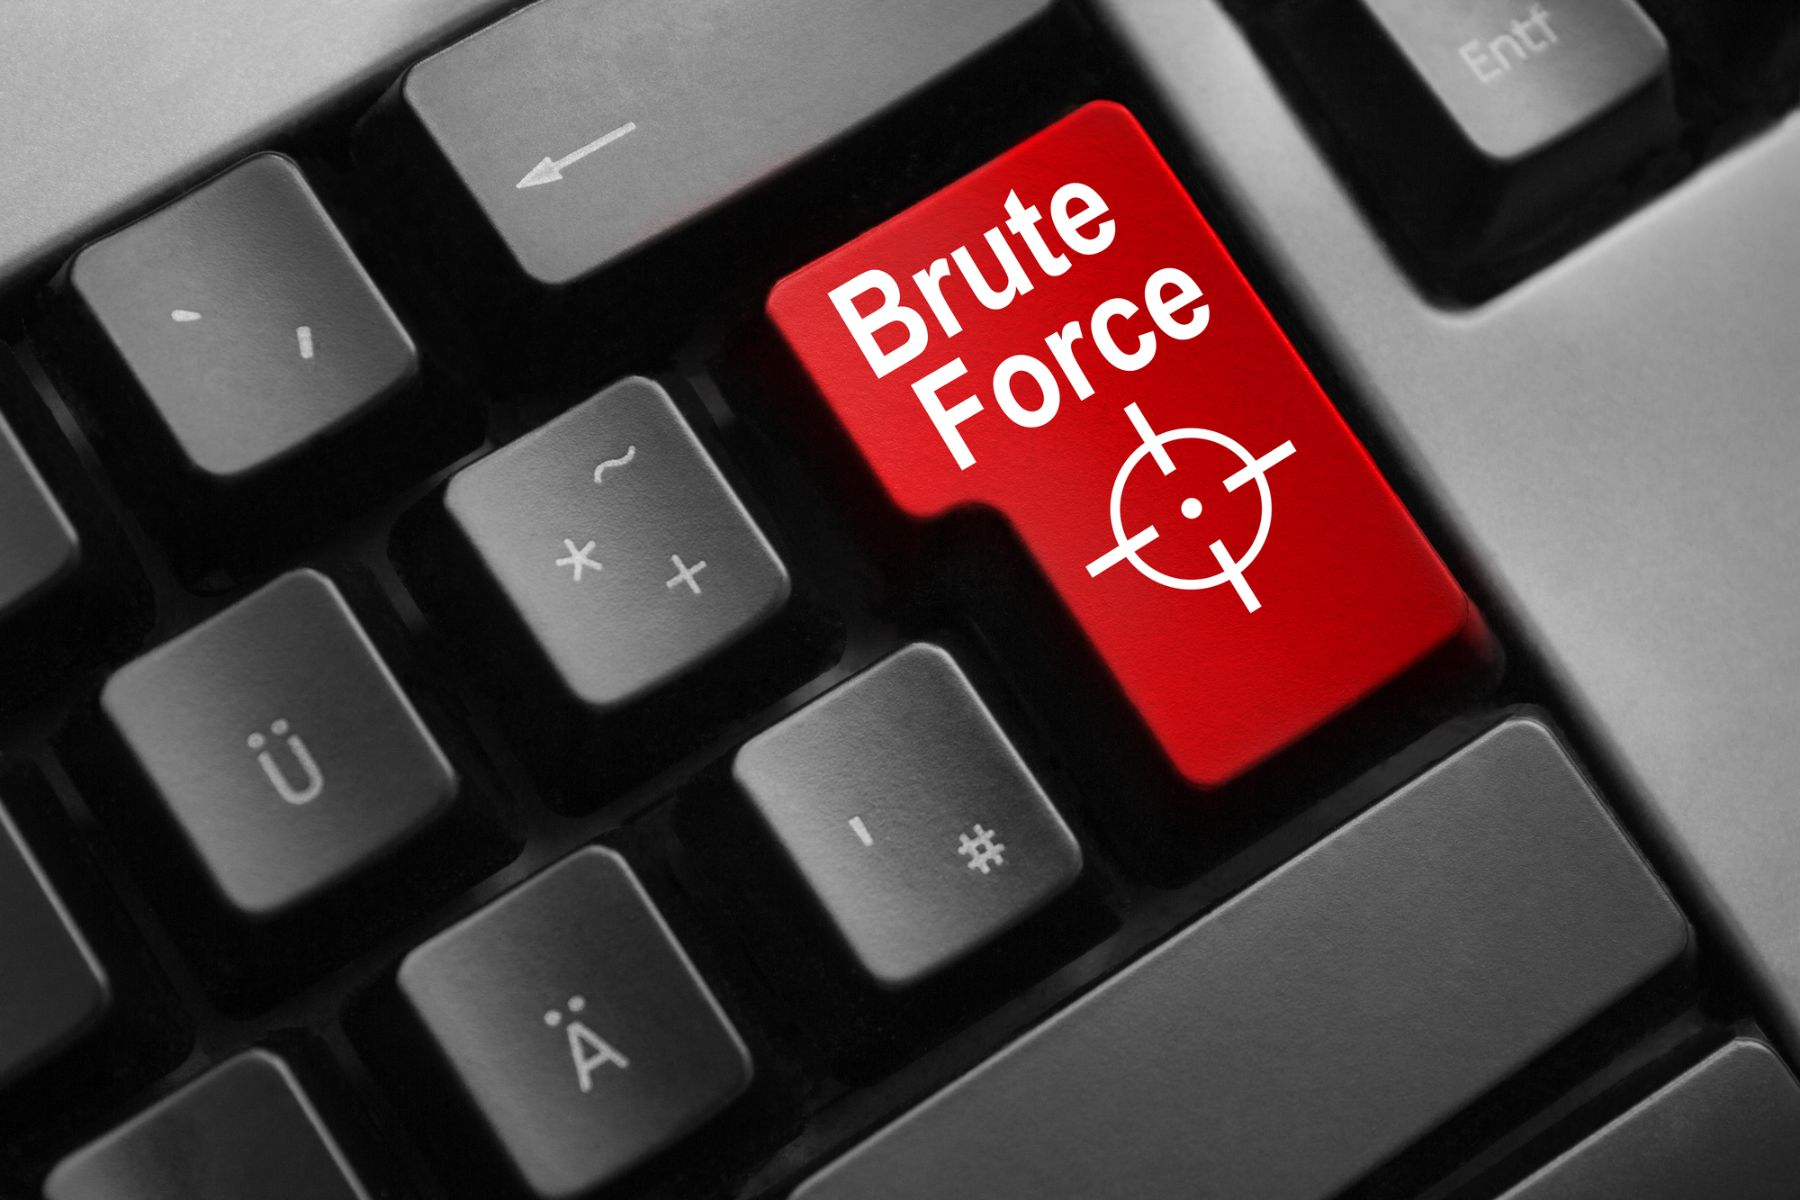 Brute Force icon on keyboard